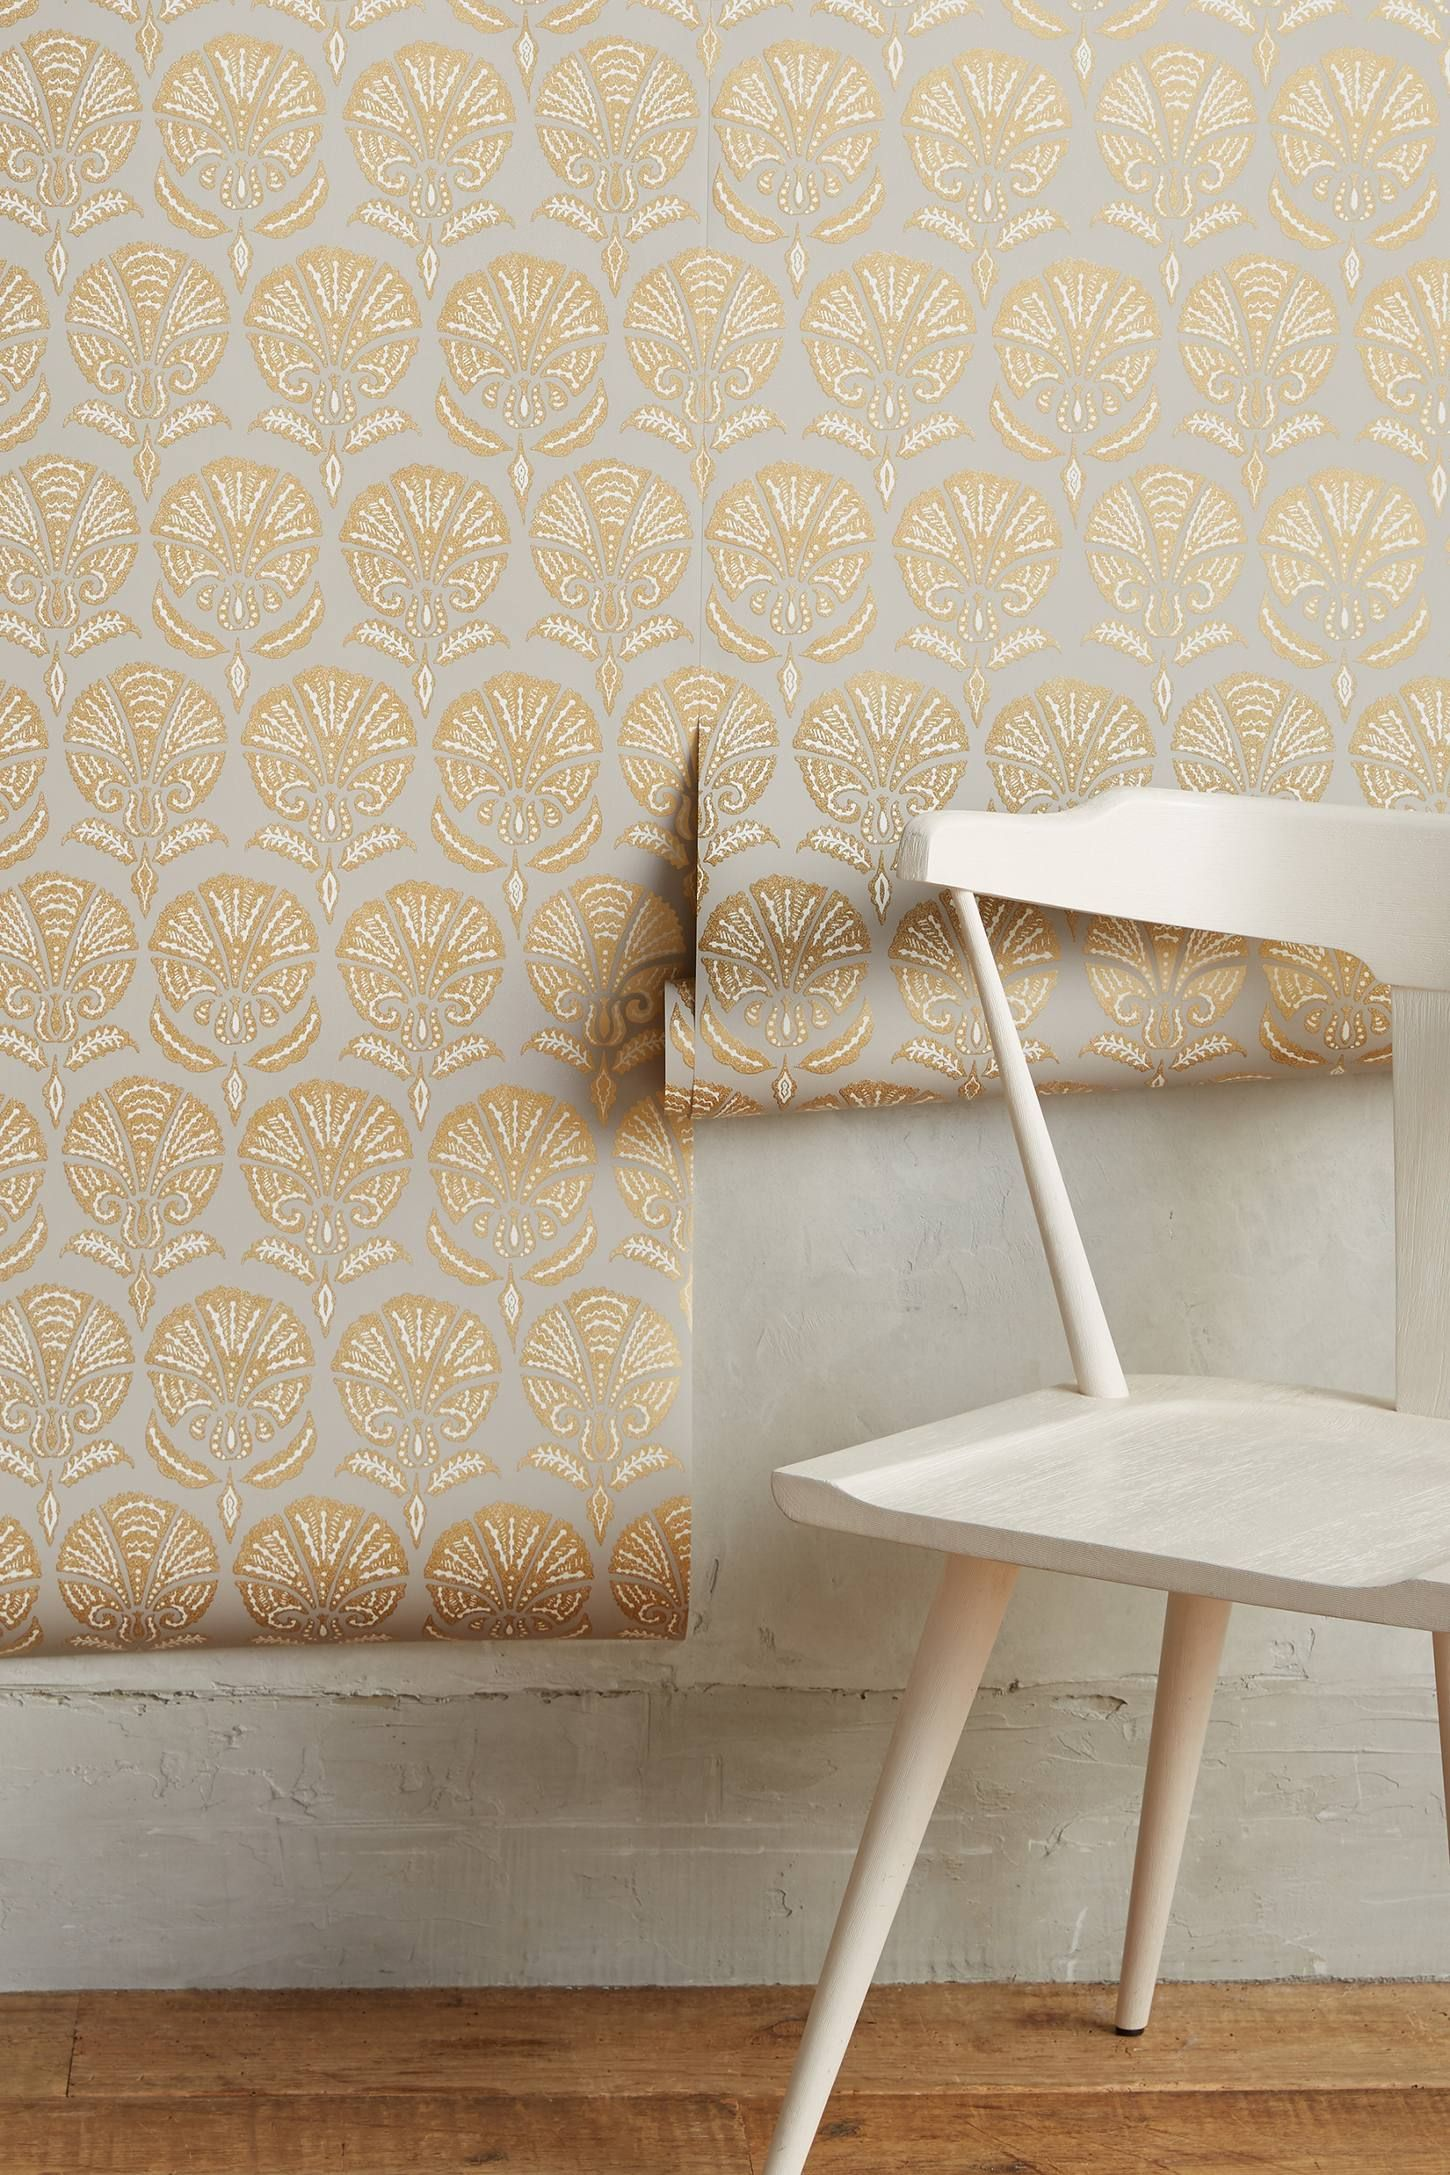 Obidos Wallpaper Home goods, Wallpaper, Home